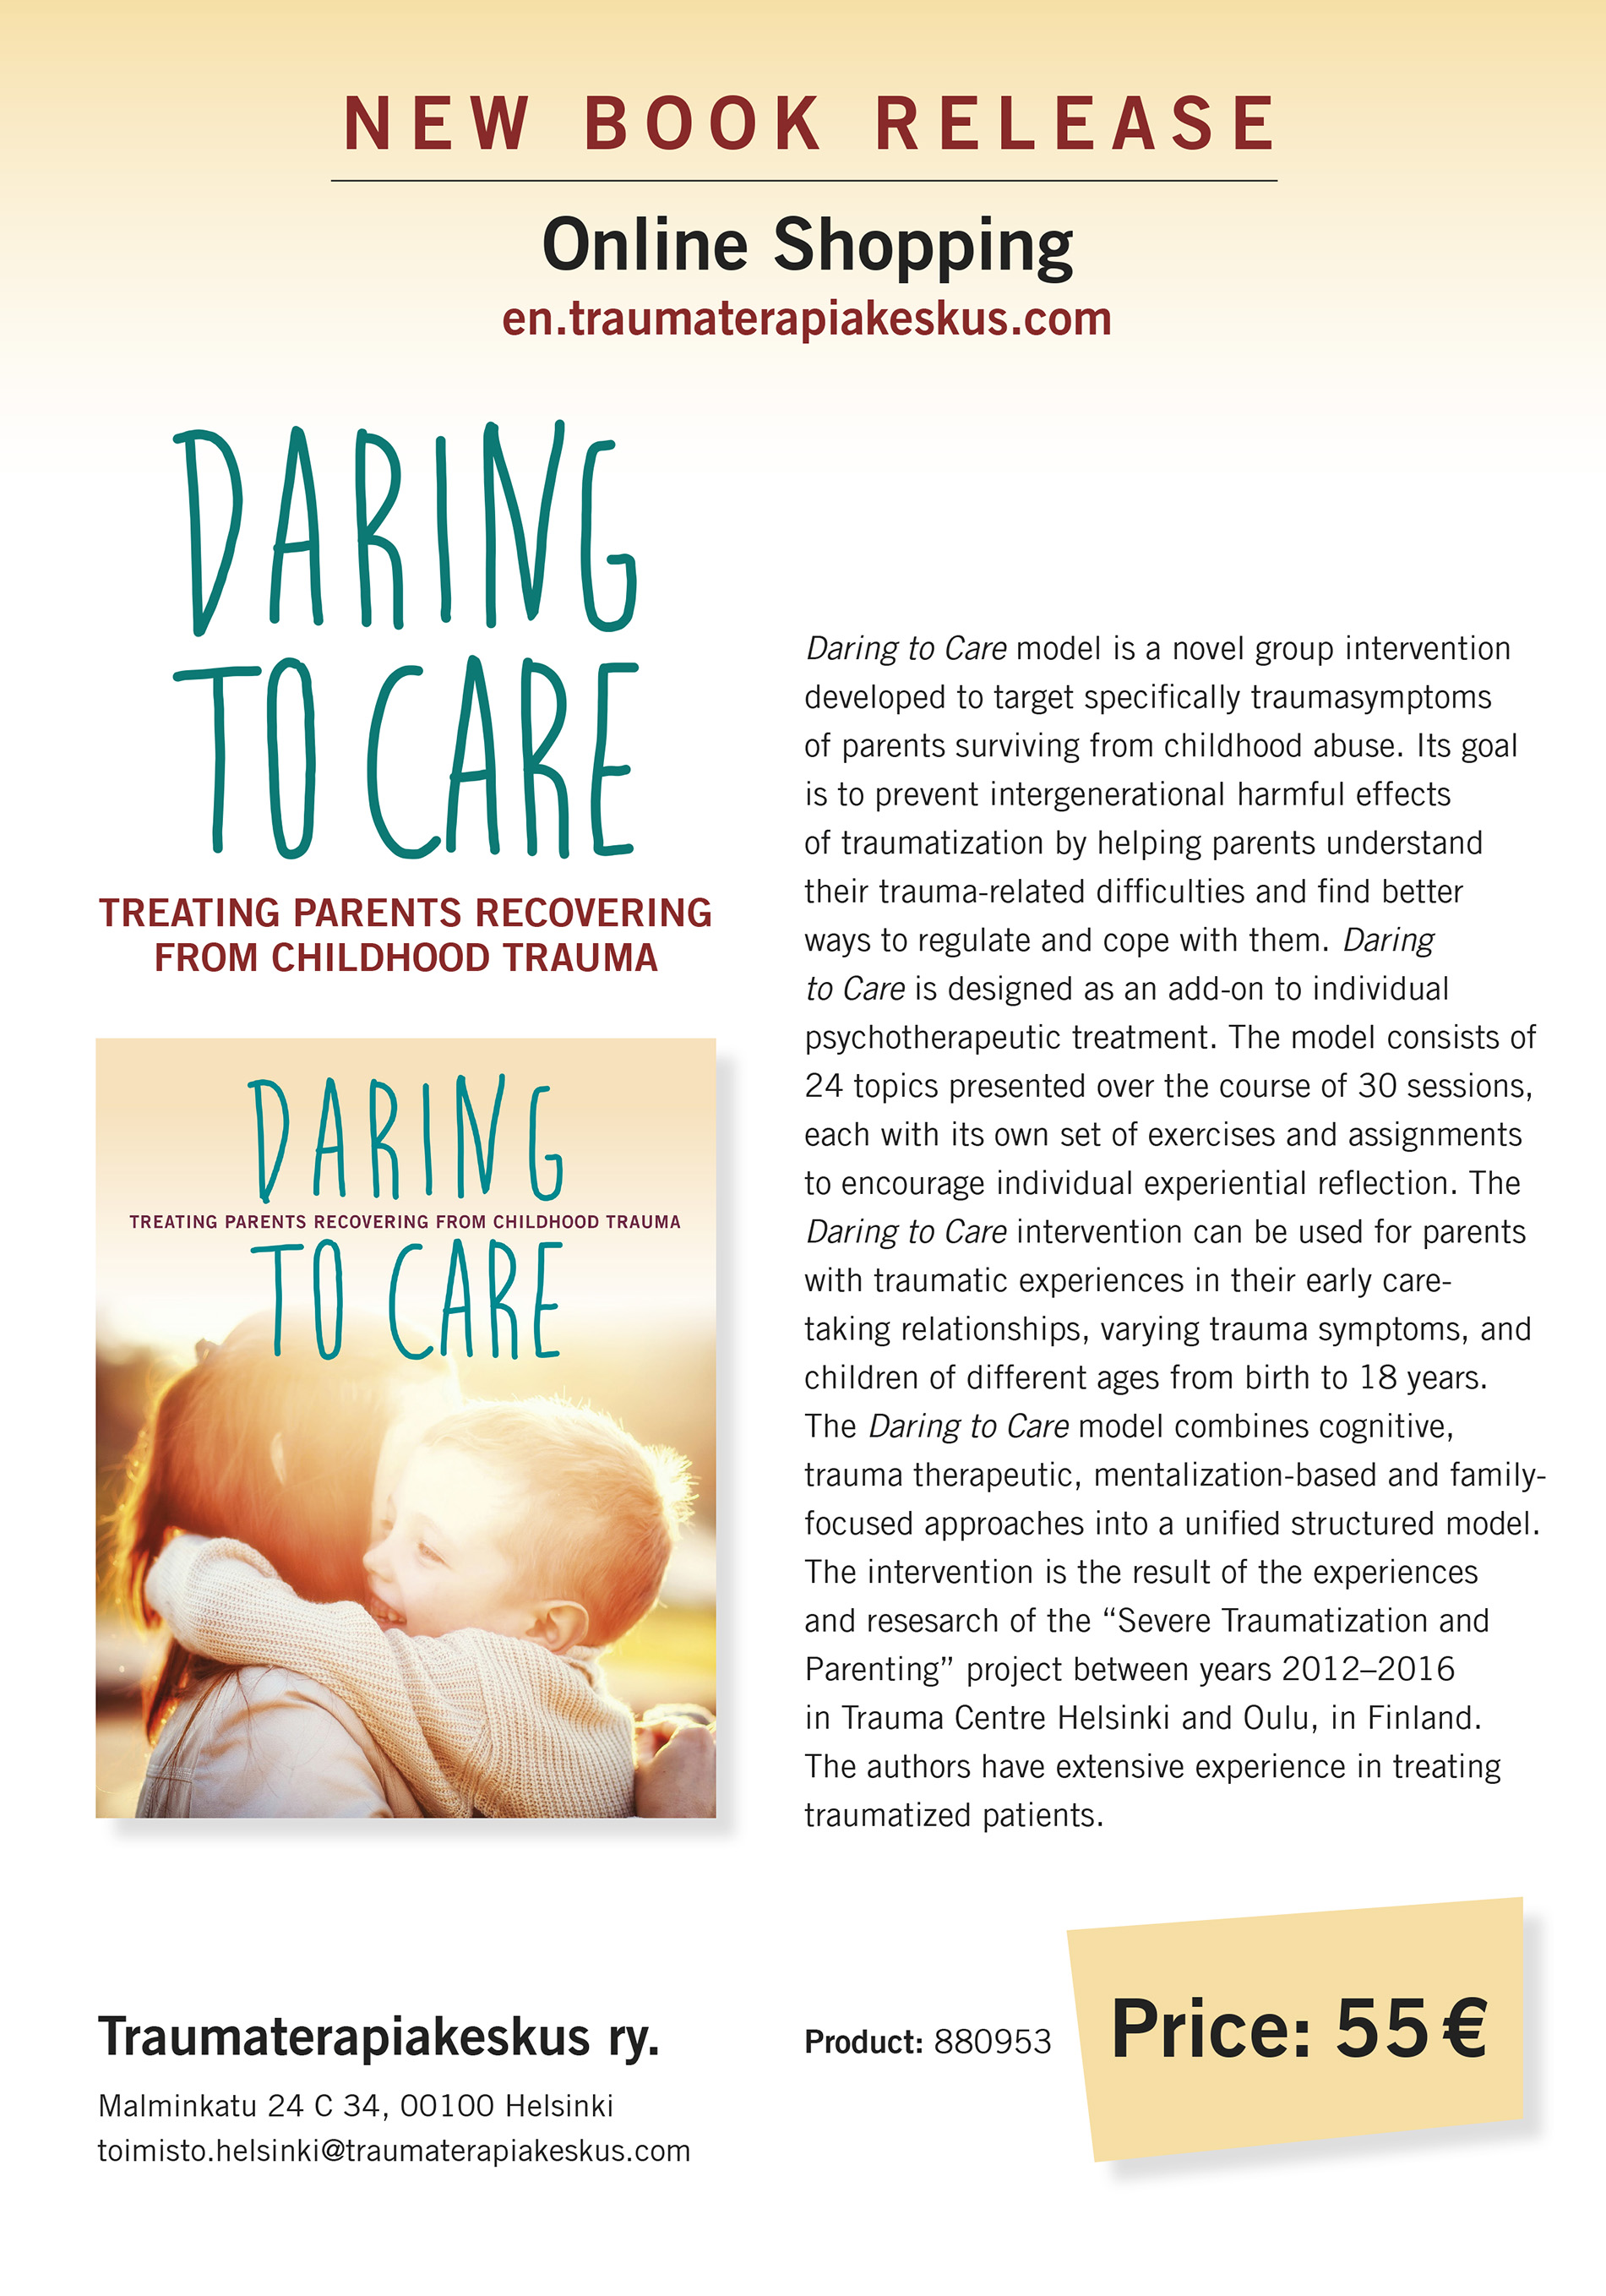 Daring to Care